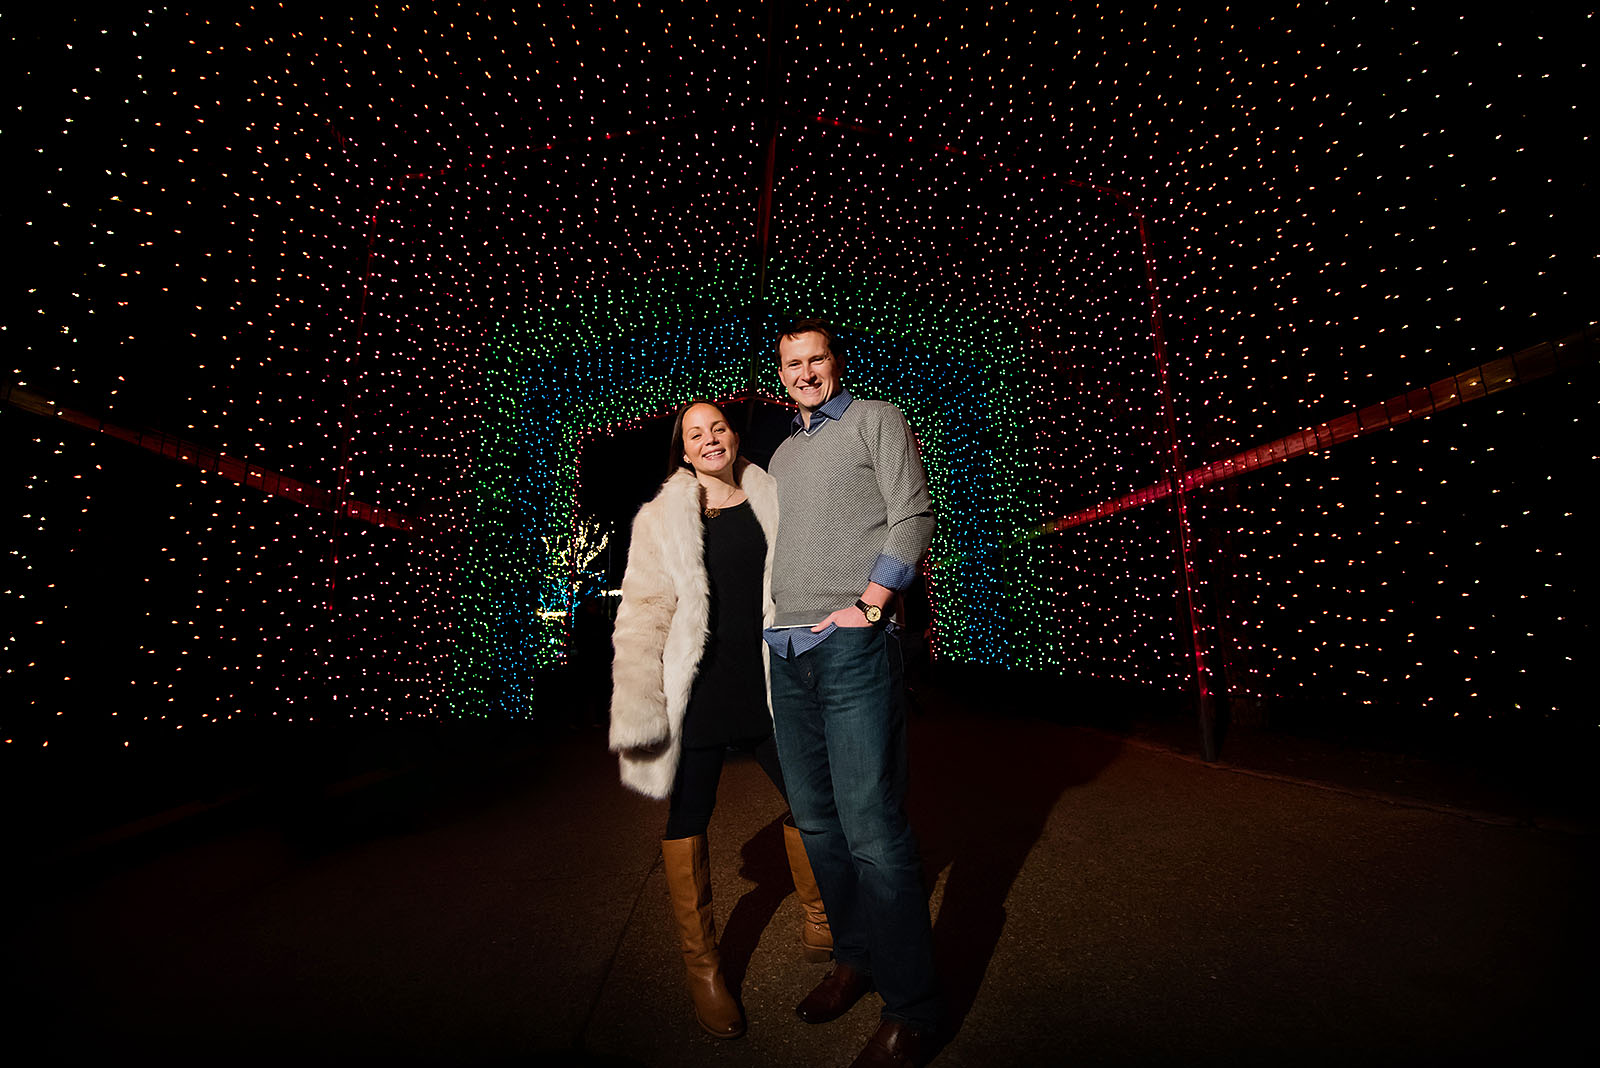 Zoo Lights Engagement Session Chicago